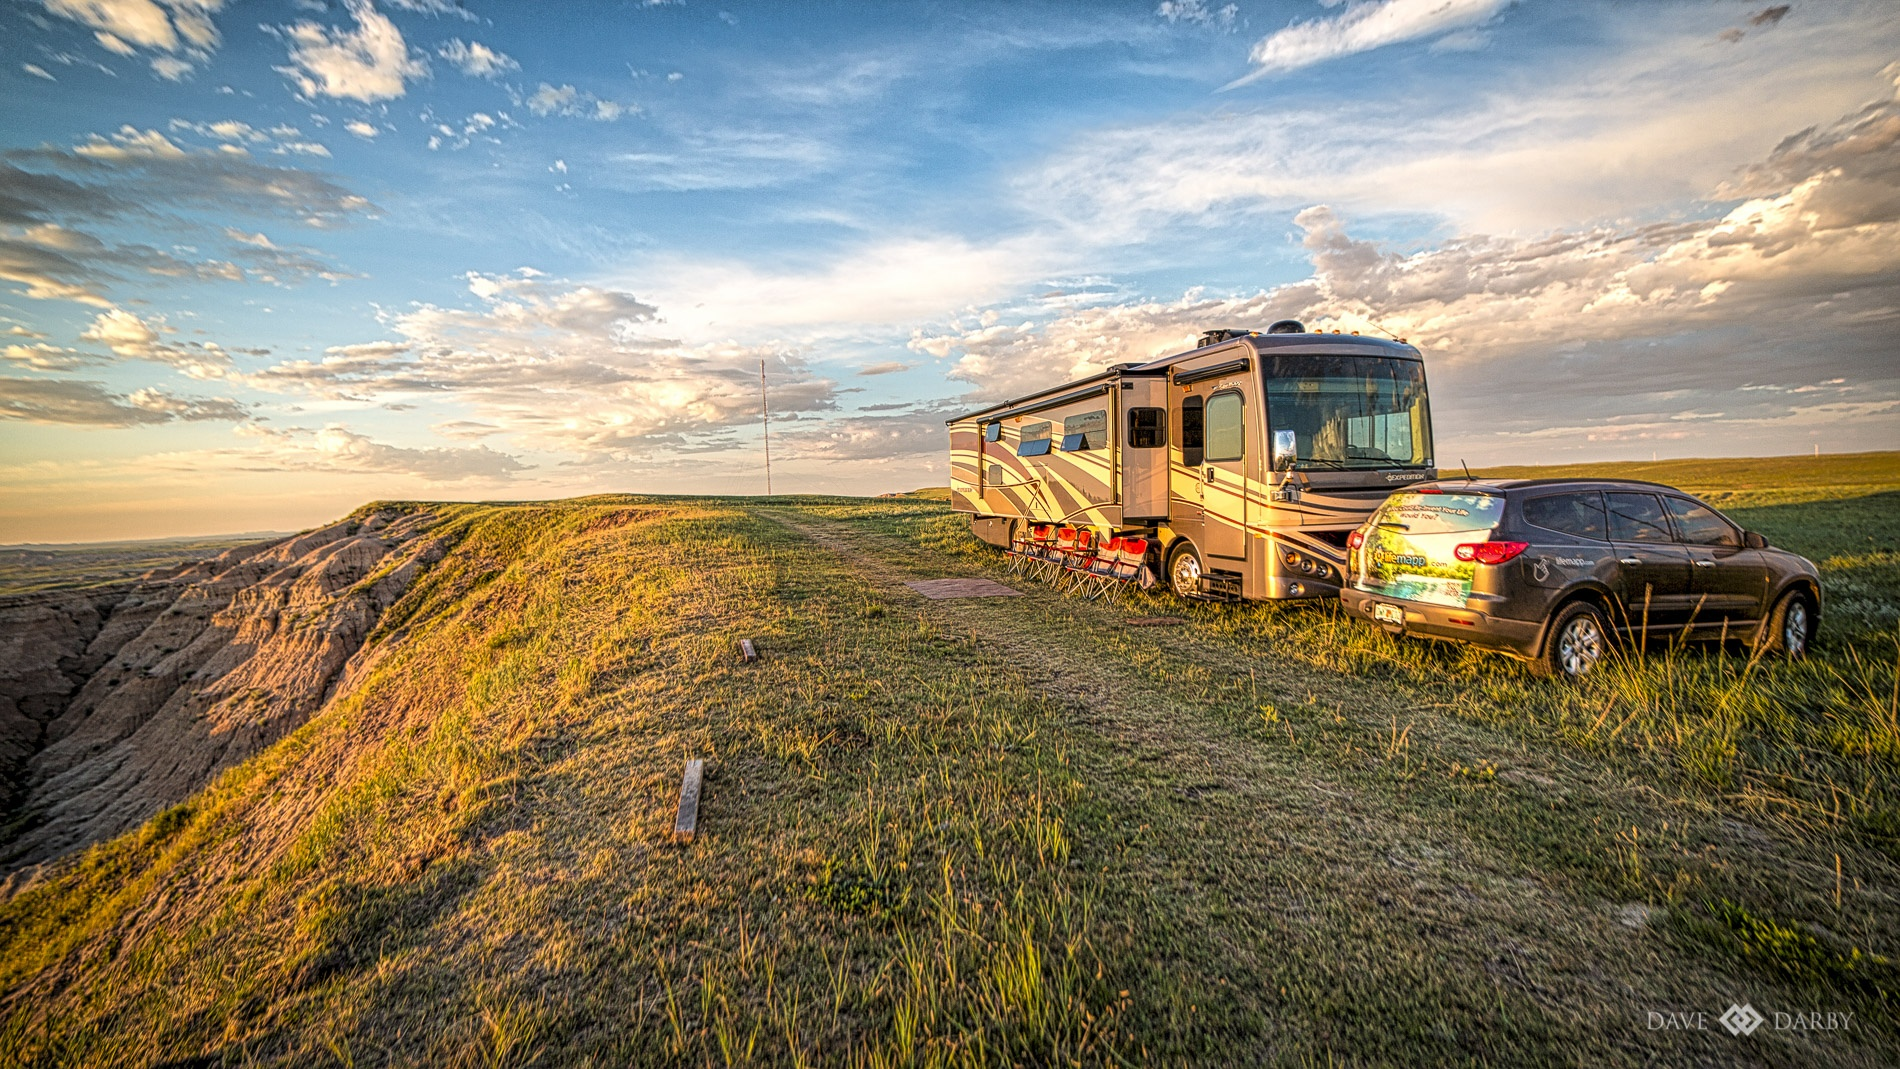 Wild Camping in the Badlands